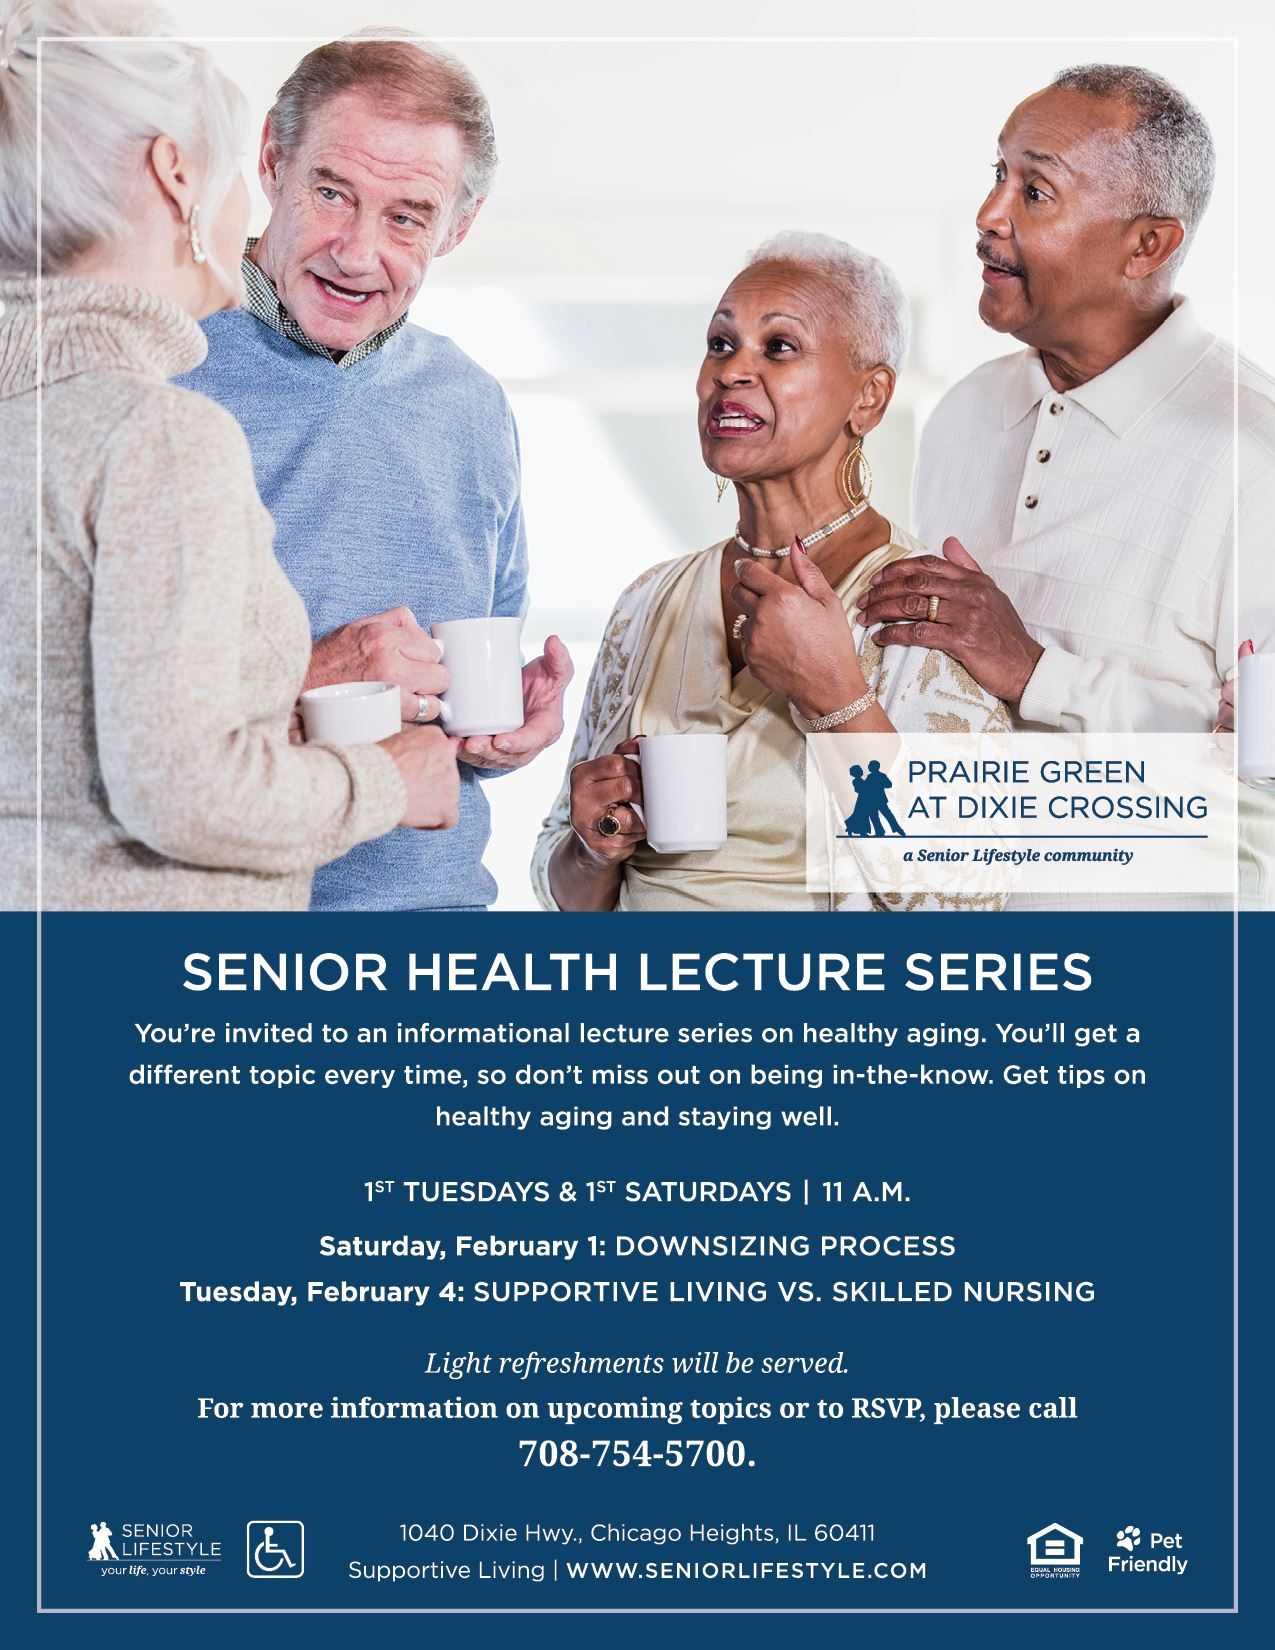 Prairie Green at Dixie Crossing - Senior Health Lecture Series 2020